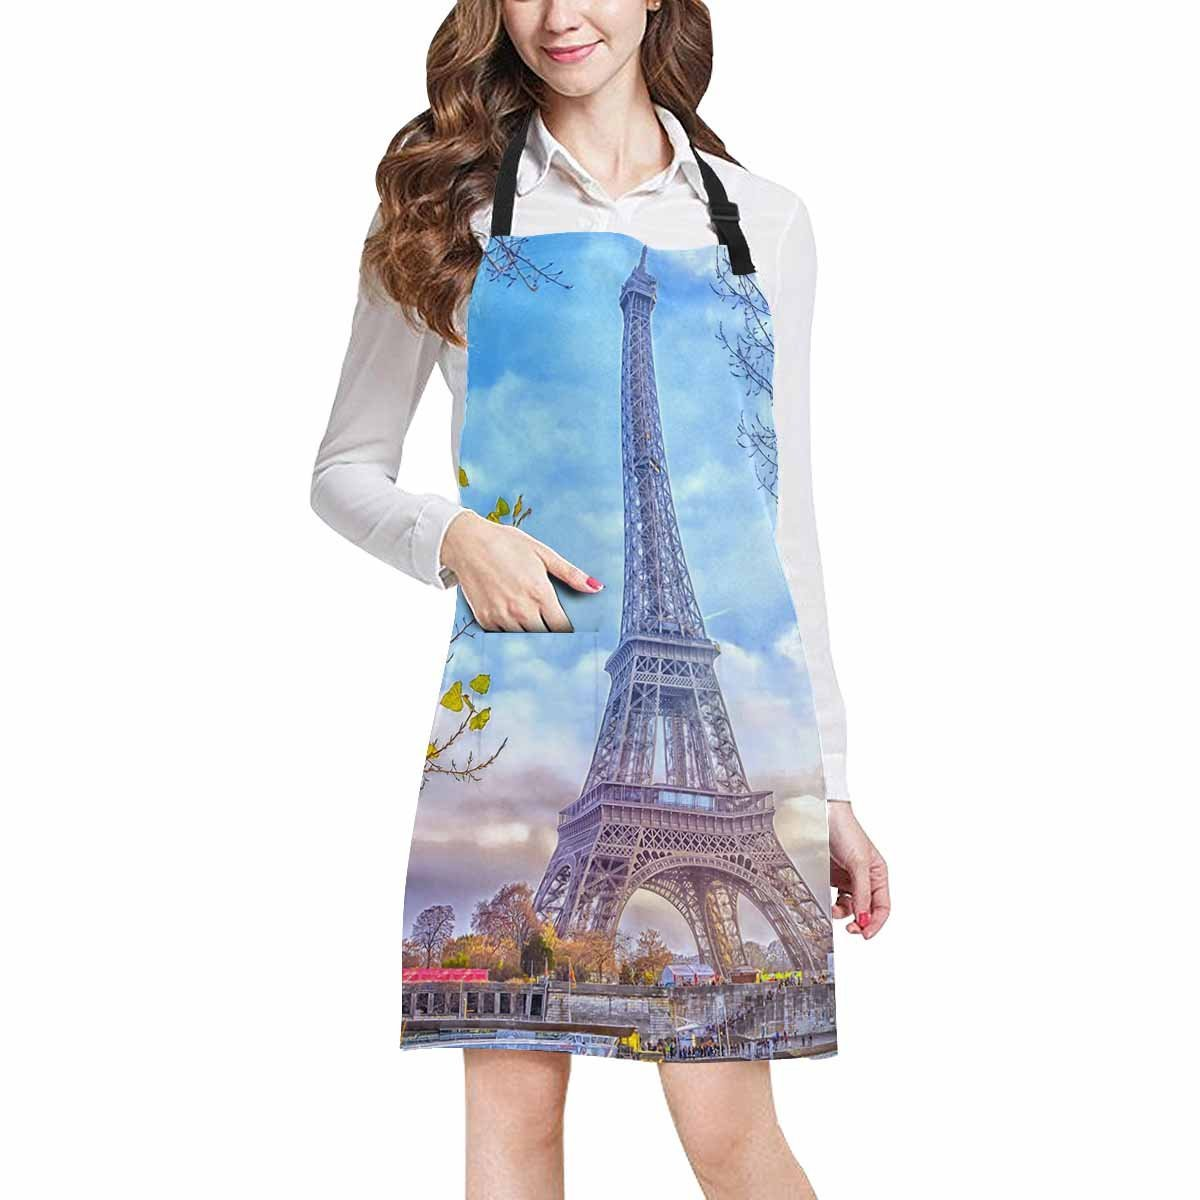 InterestPrint Romantic Eiffel Tower in Paris France Home Kitchen Apron for Women Men with Pockets, Unisex Adjustable Bib Apron for Cooking Baking Gardening, Large Size